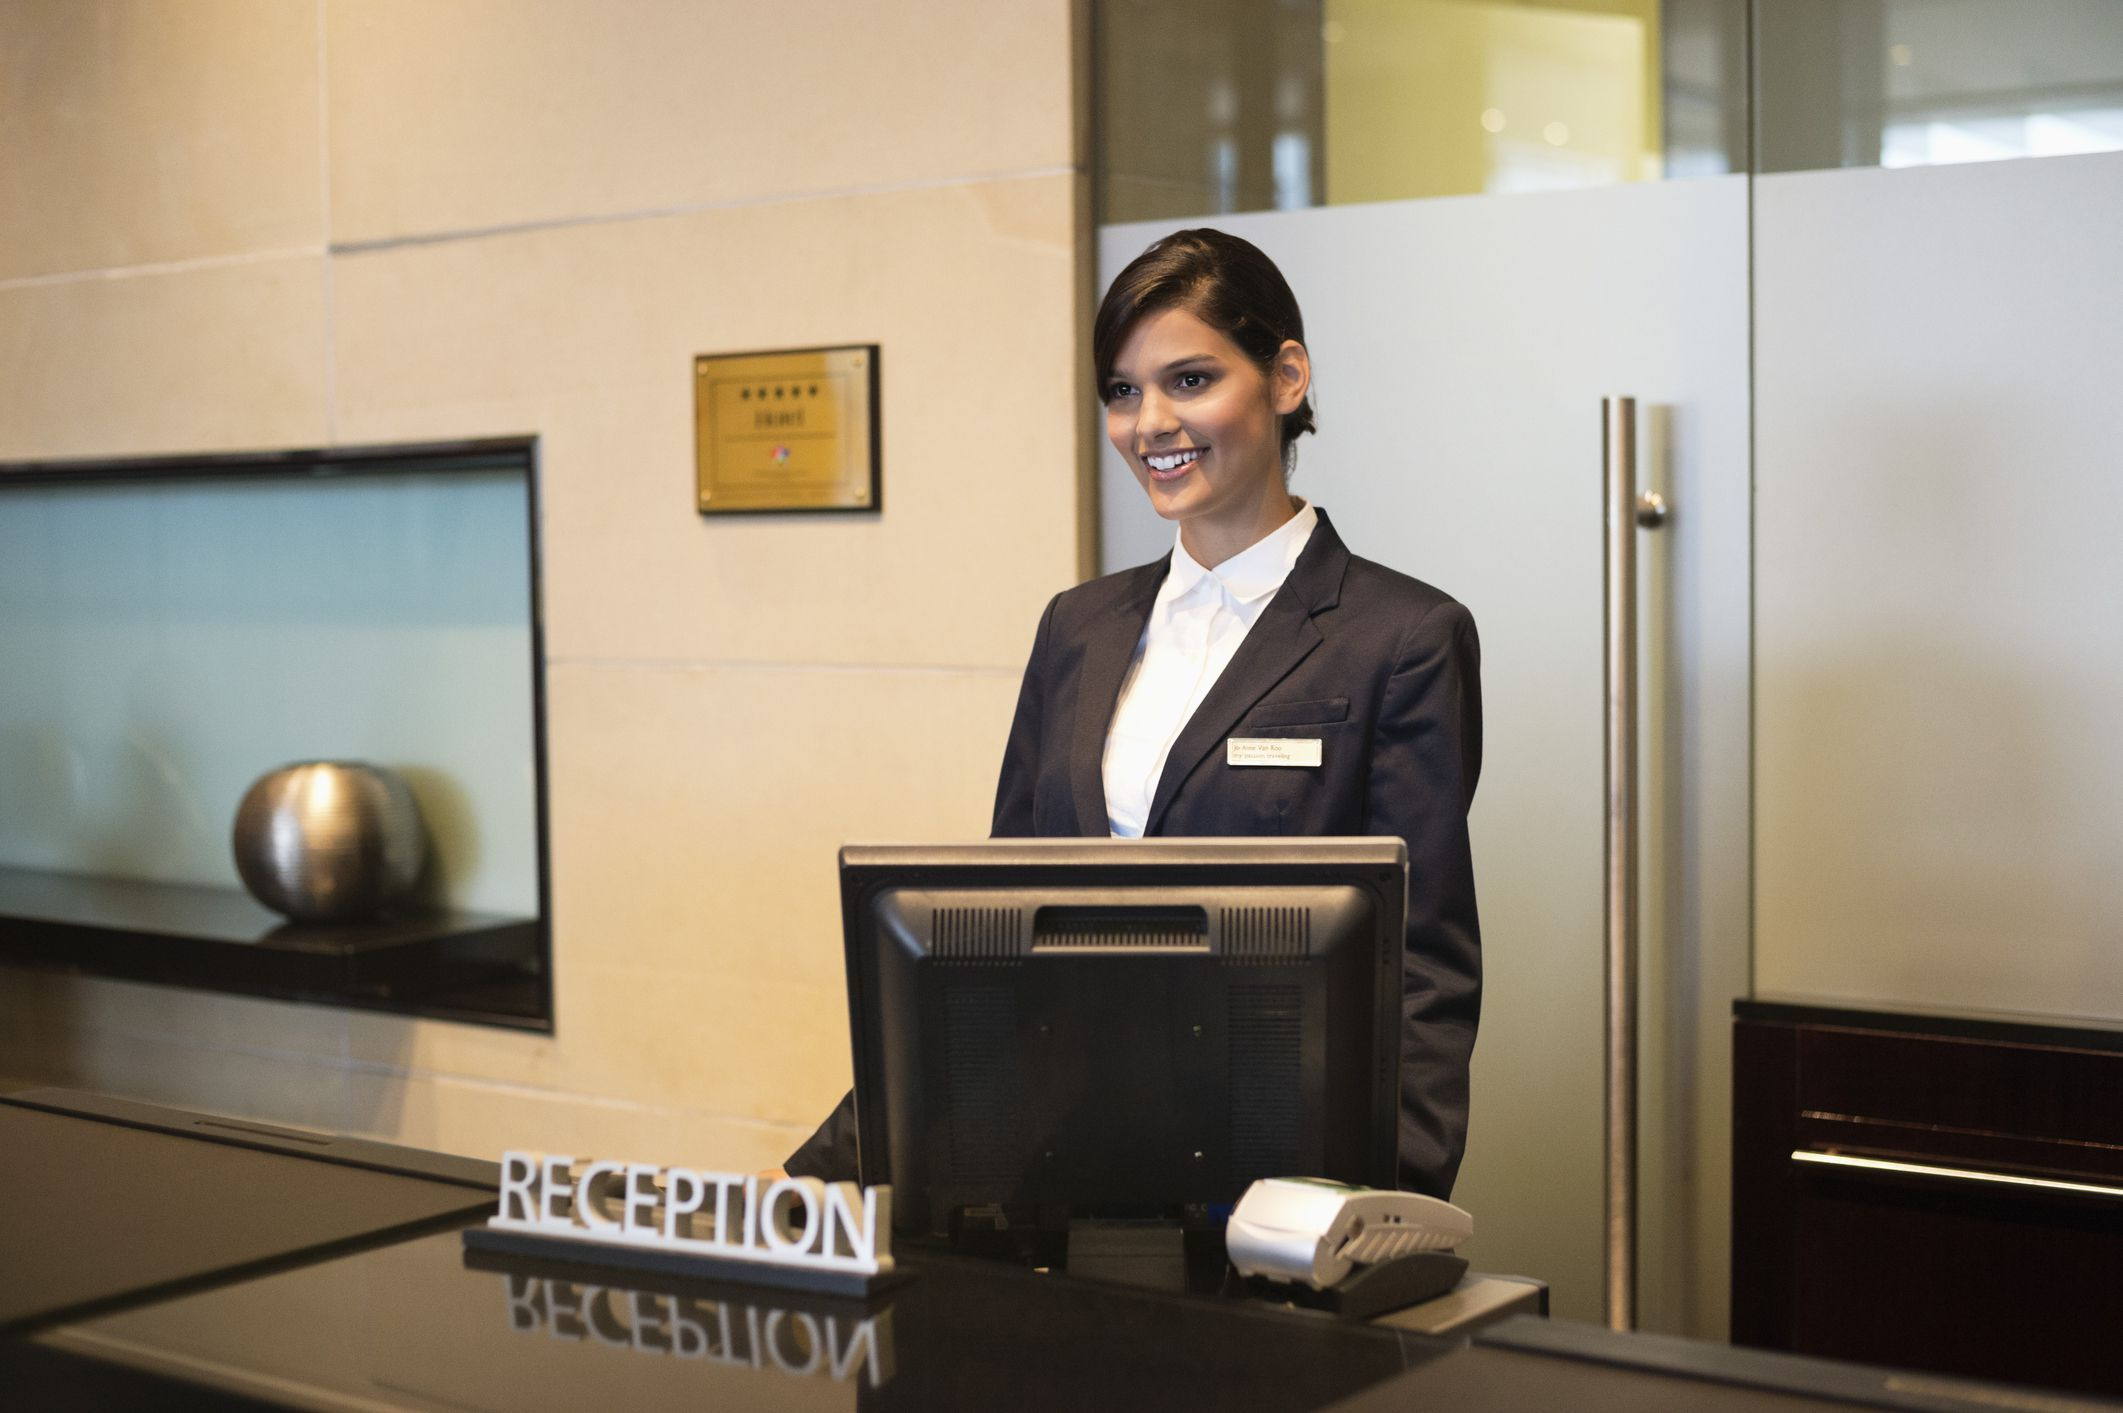 List Of Restaurant Hotel And Other Hospitality Industry Job Titles Hotel Reception Hotel Jobs Hospitality Industry